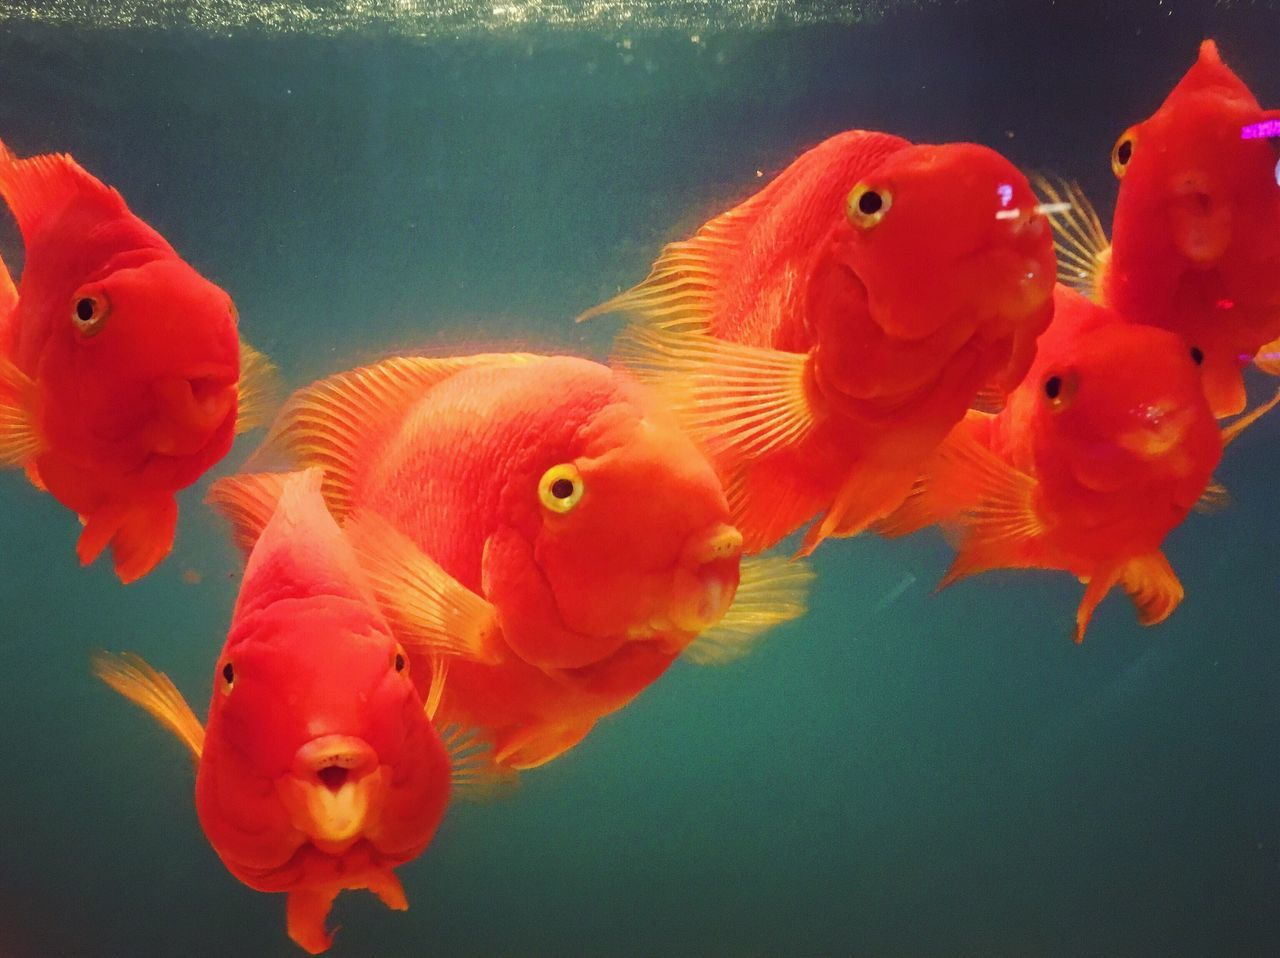 Close-Up Of Fish In Water